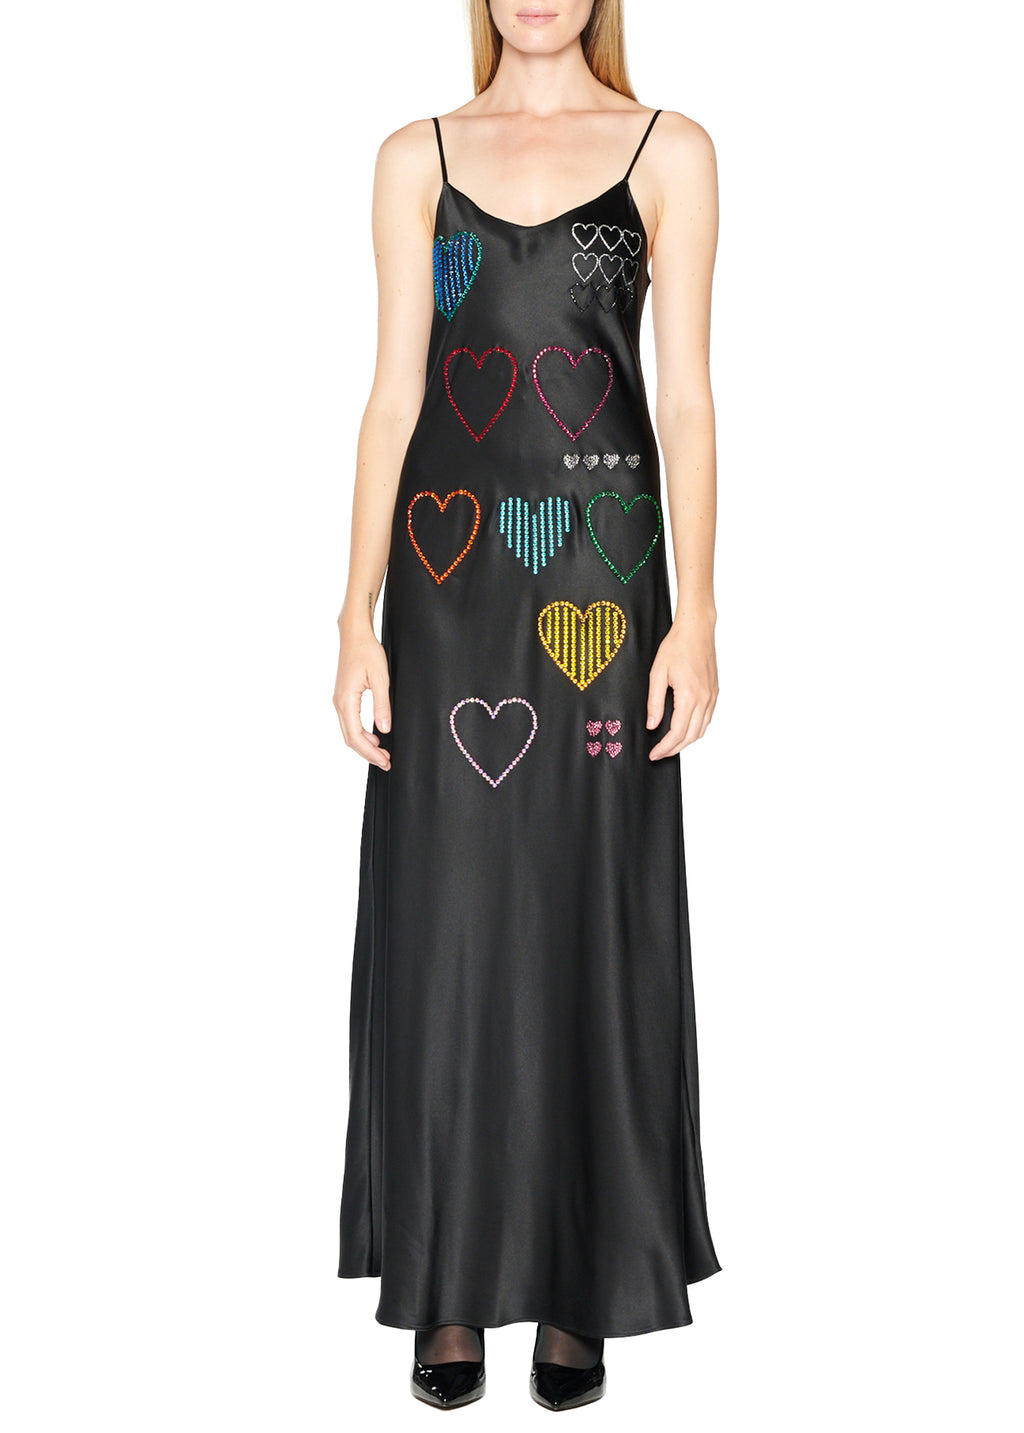 'HEARTS' Long Slip Dress - Women's Dresses - Libertine